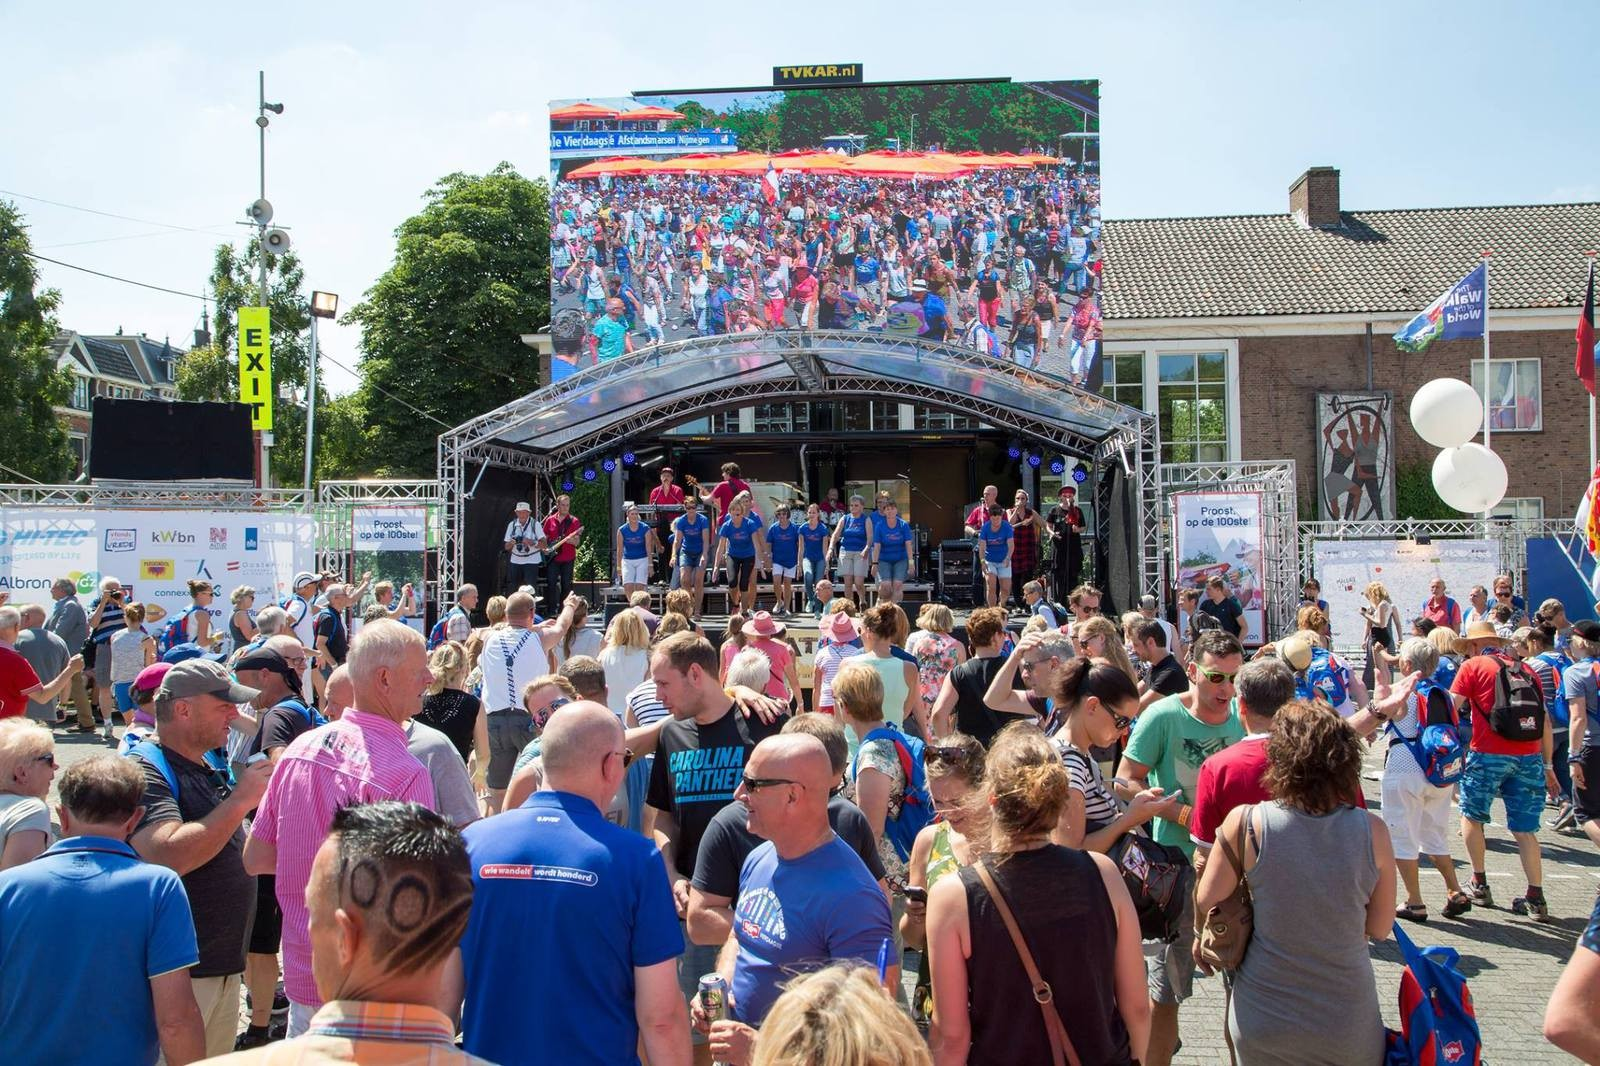 20160718 Catch Op Podium Met Olga Commandeur En Parkinson Vereniging